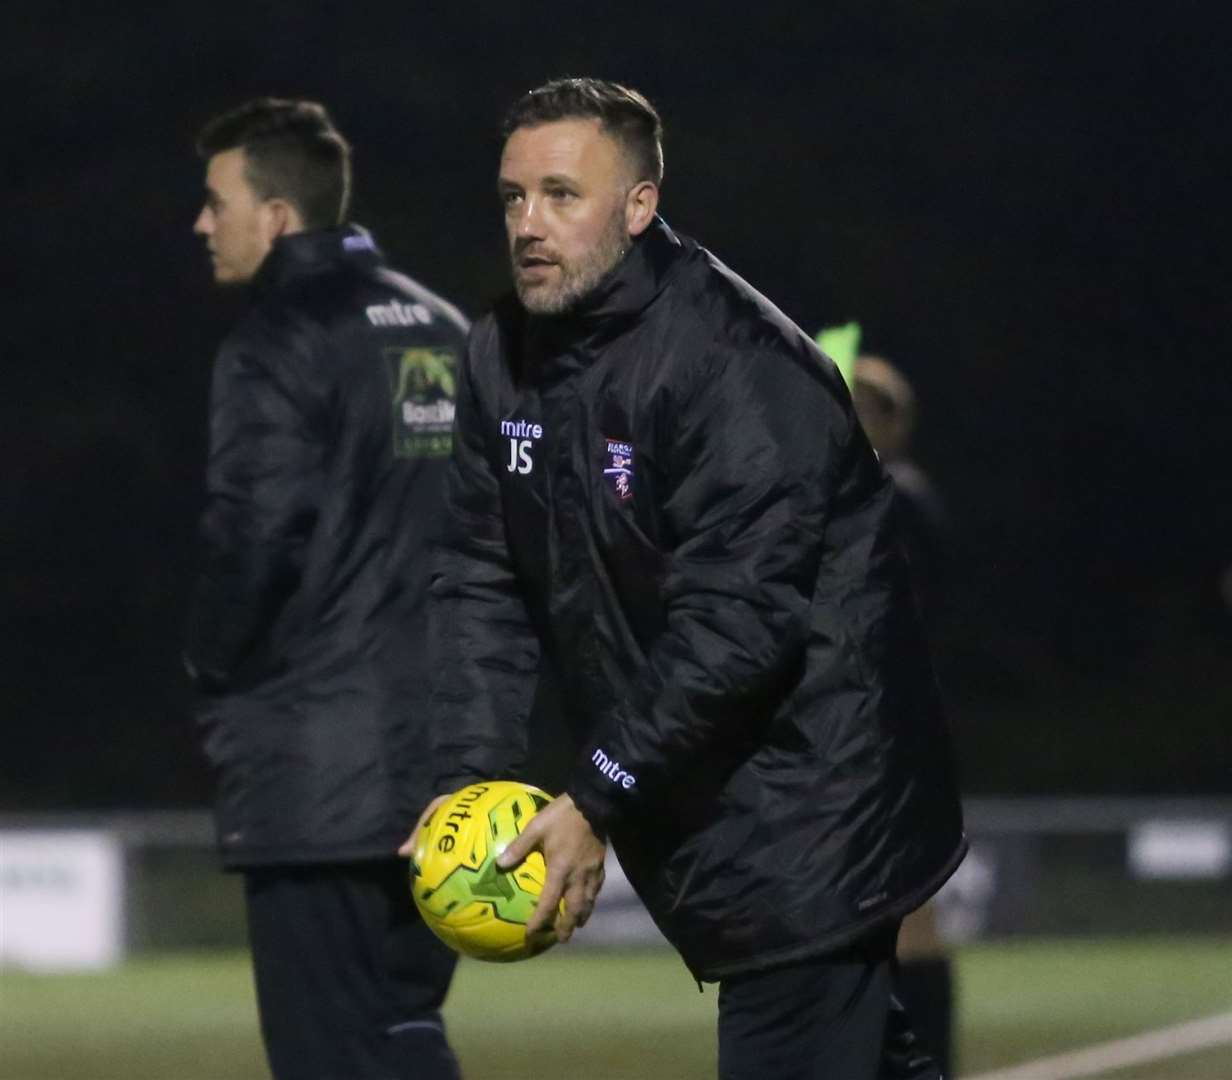 Jay Saunders has led Margate to Bostik Premier safety Picture: Don Walker